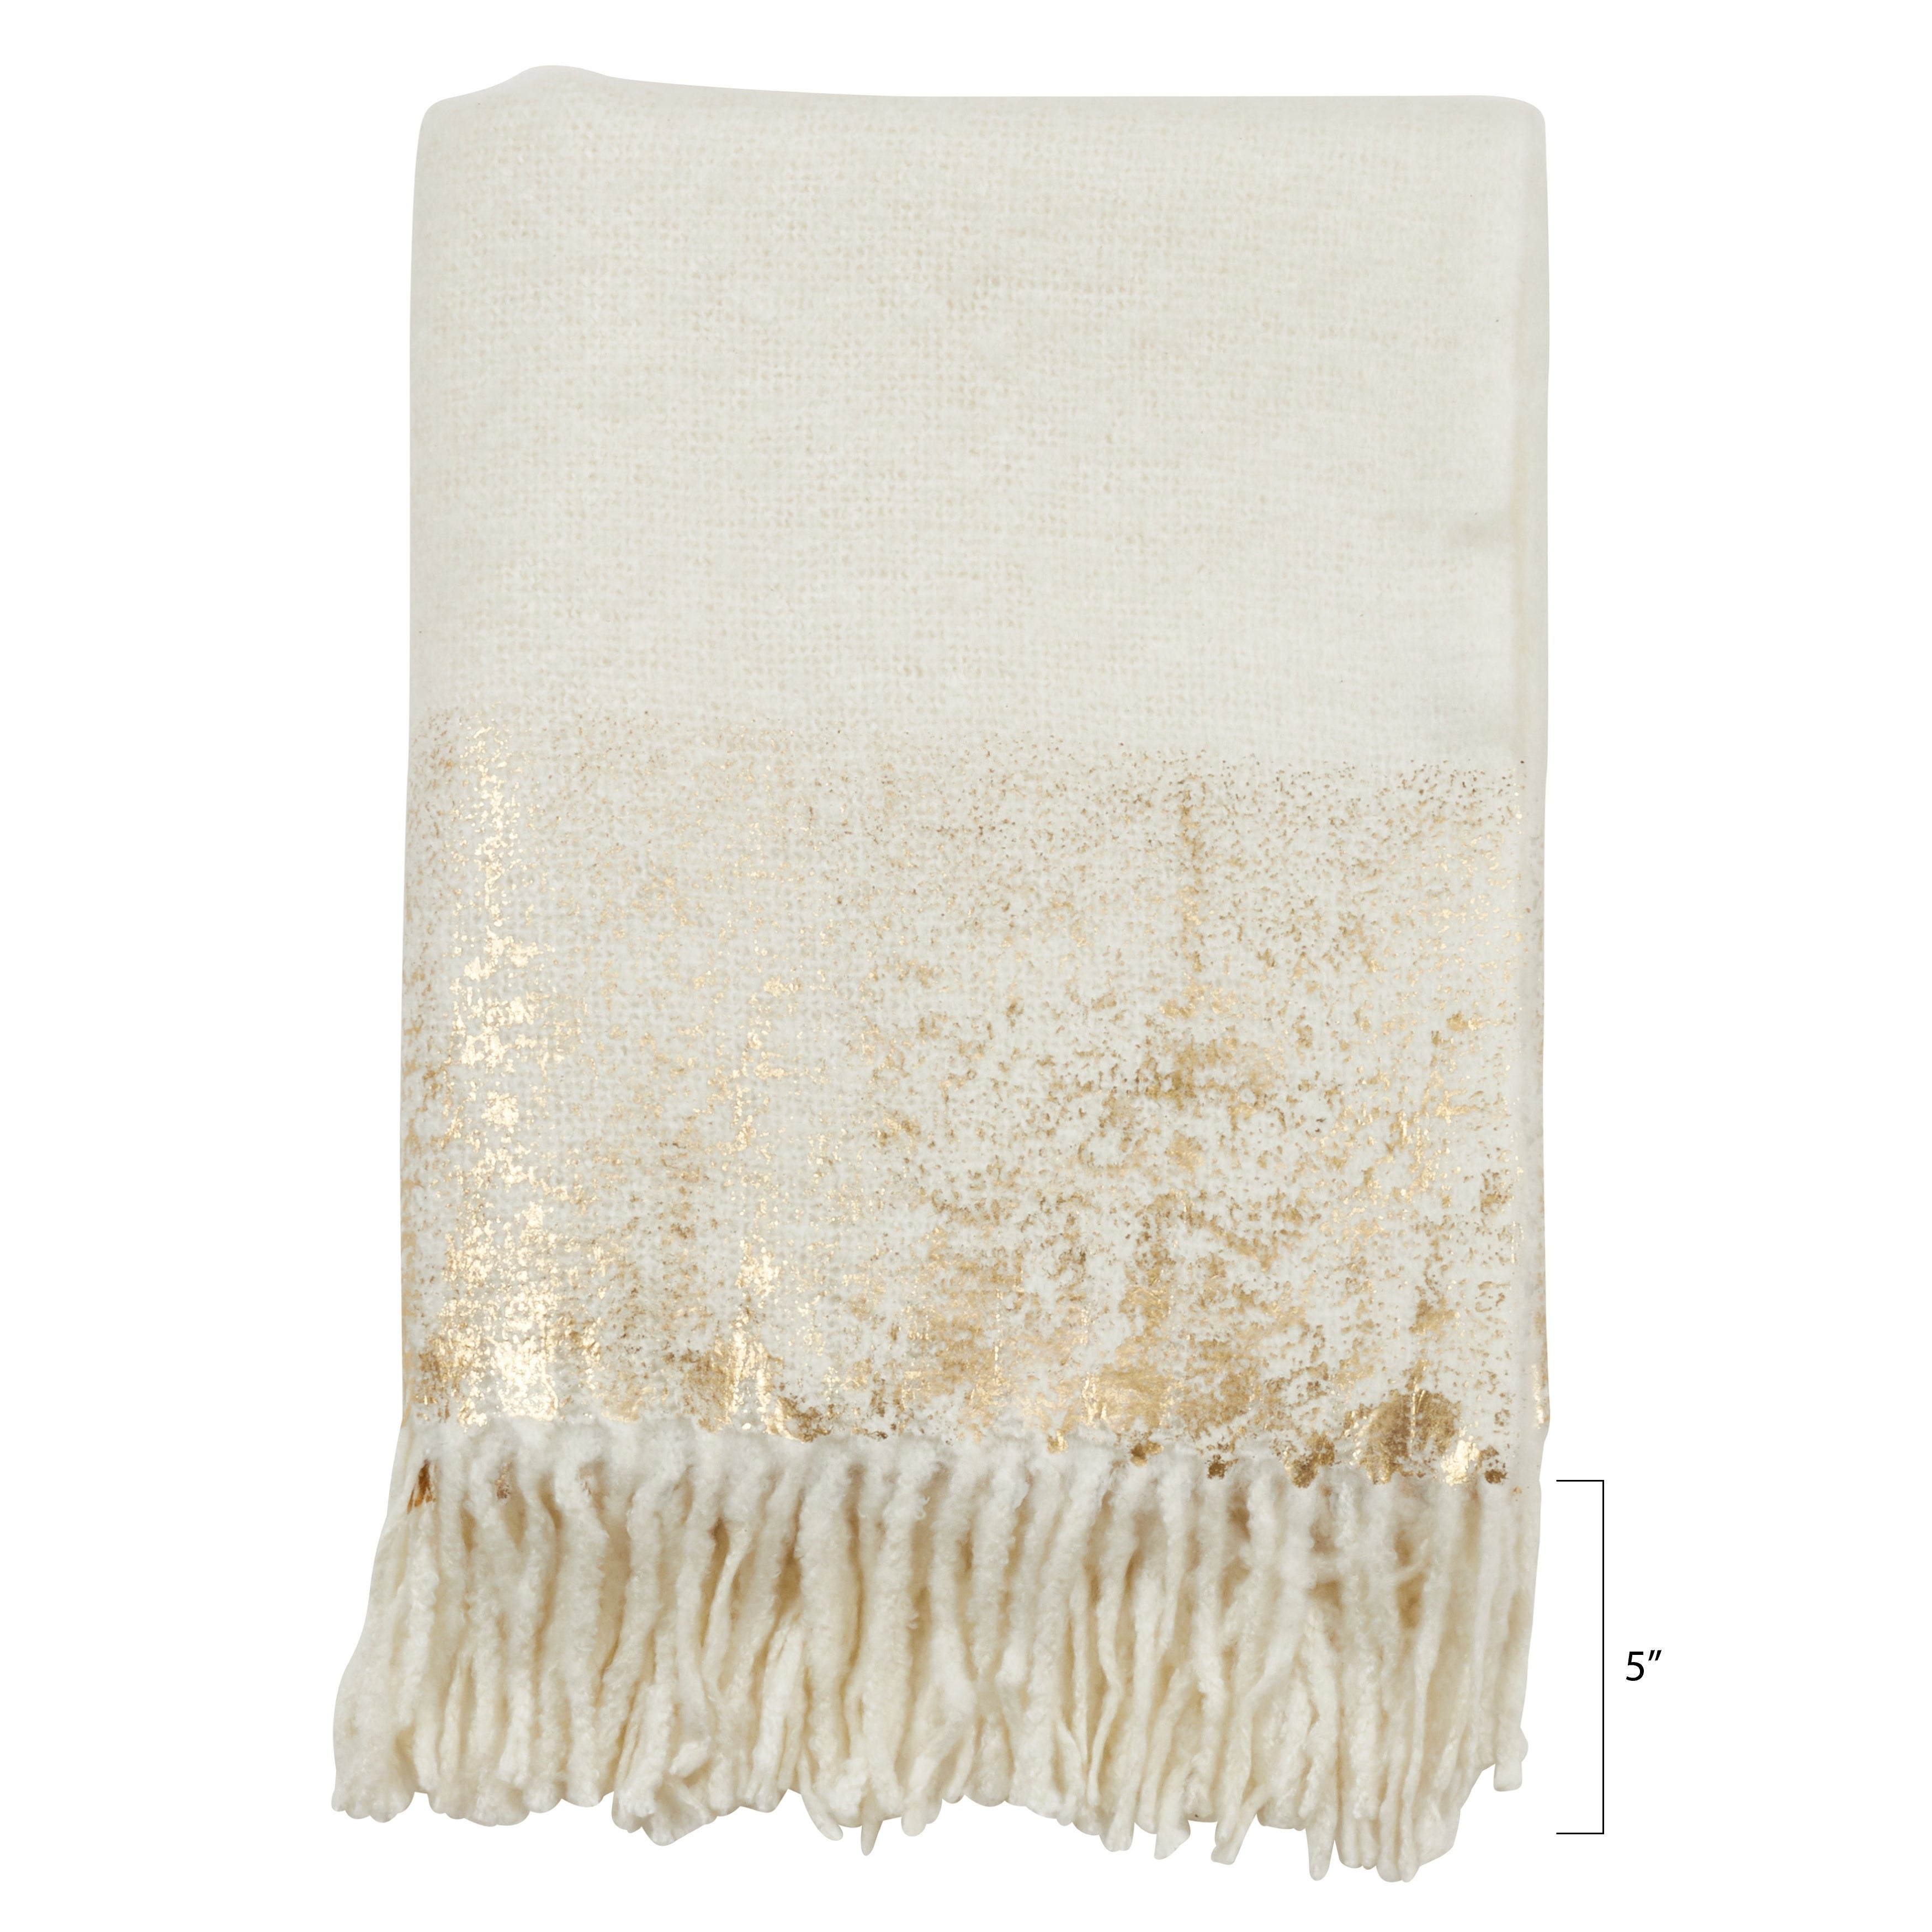 Cotton Throw With Foil Print Design Gold Throw For Sale Online Ebay